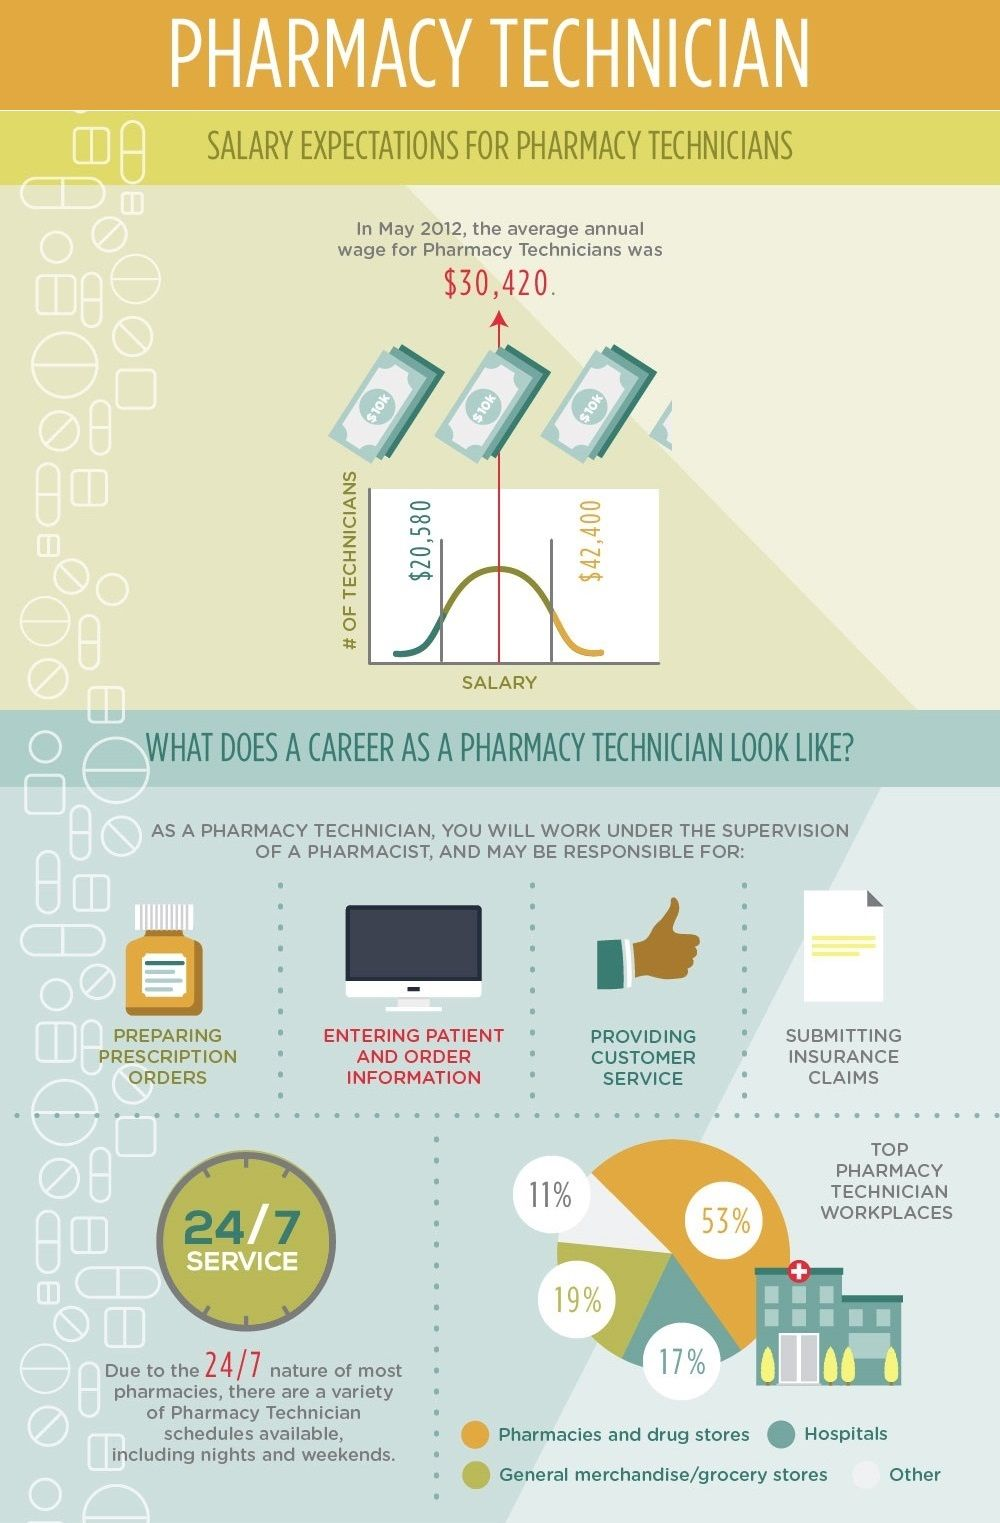 Pharmacy Technician Career. Find out the salary